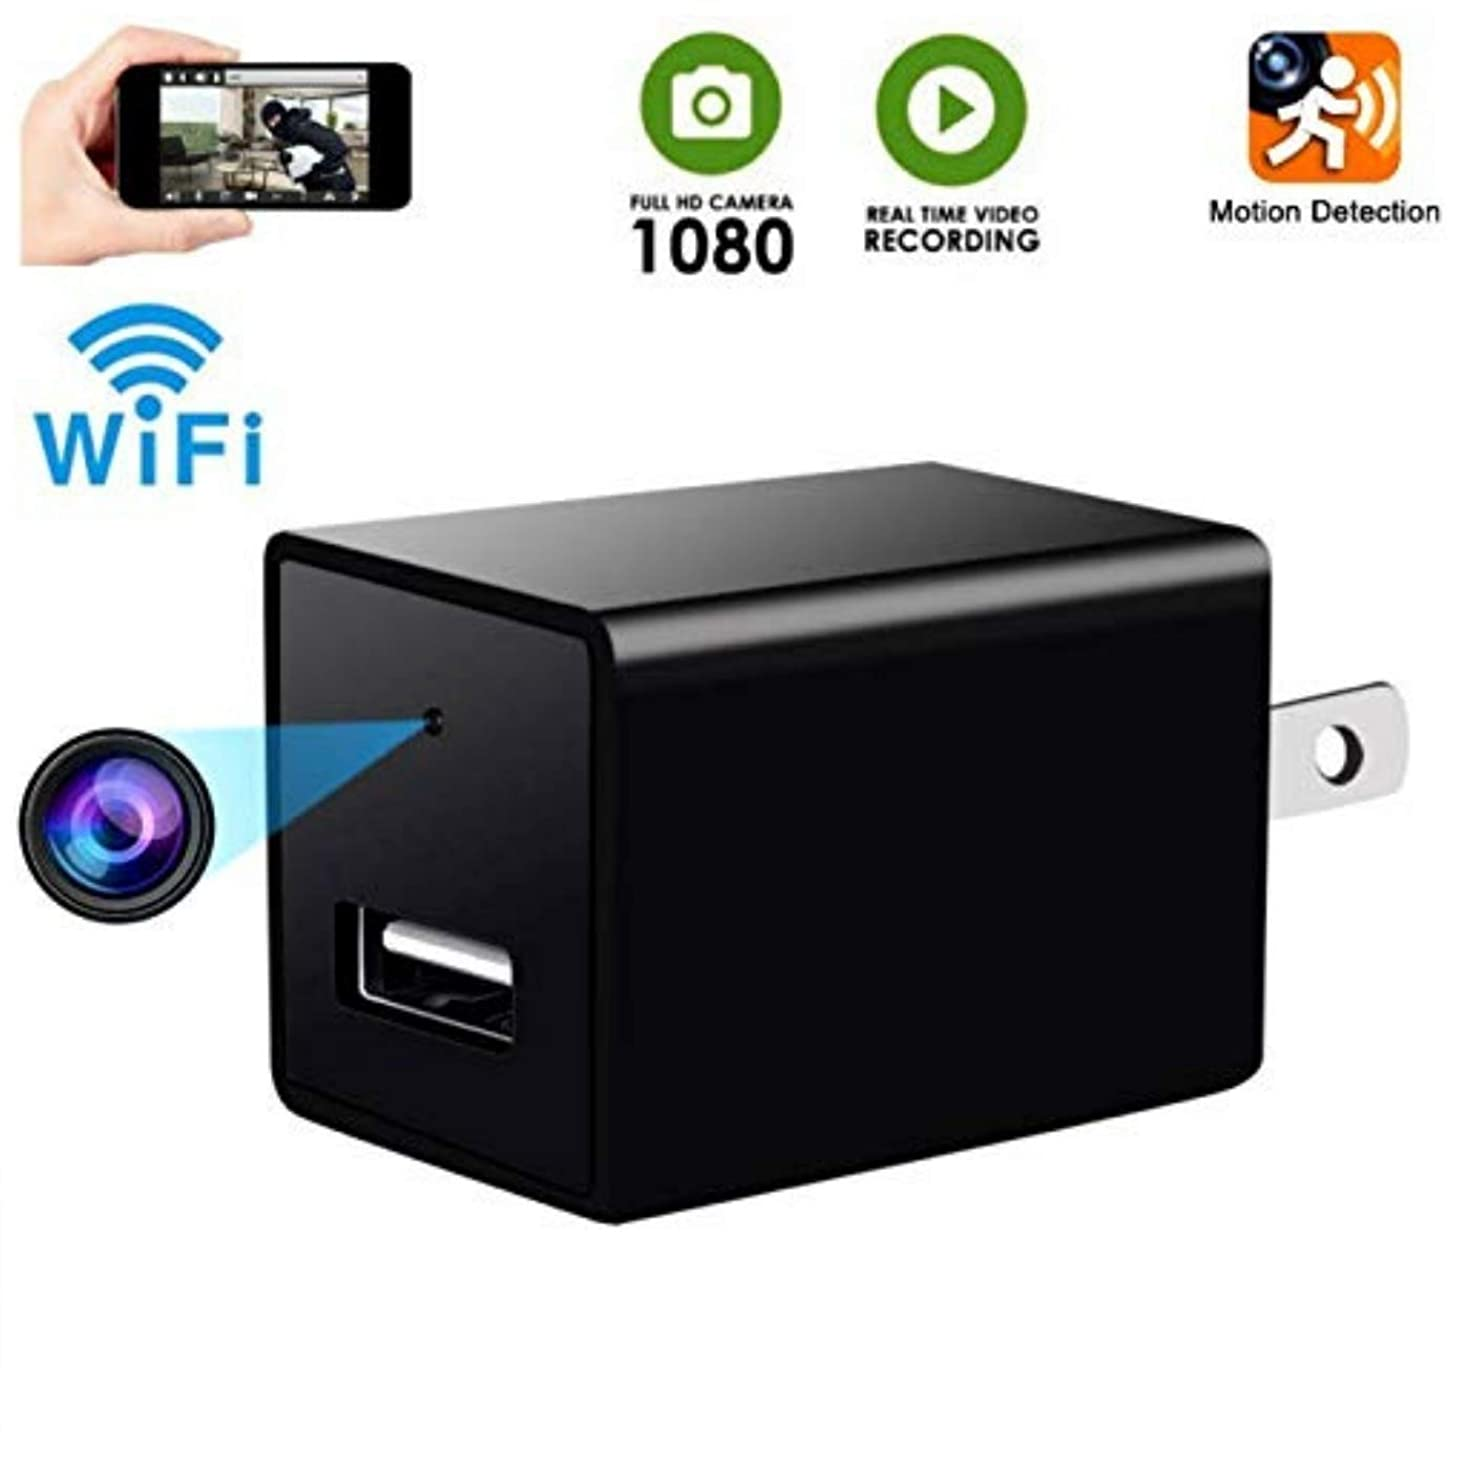 Hidden Camera- WiFi Spy Camera- HD Hidden Camera- Spy Camera Charger- Motion Detection- Nanny Camera- USB Hidden Camera- Surveillance Camera- Hidden Camera Spy- Viewing with Phone APP